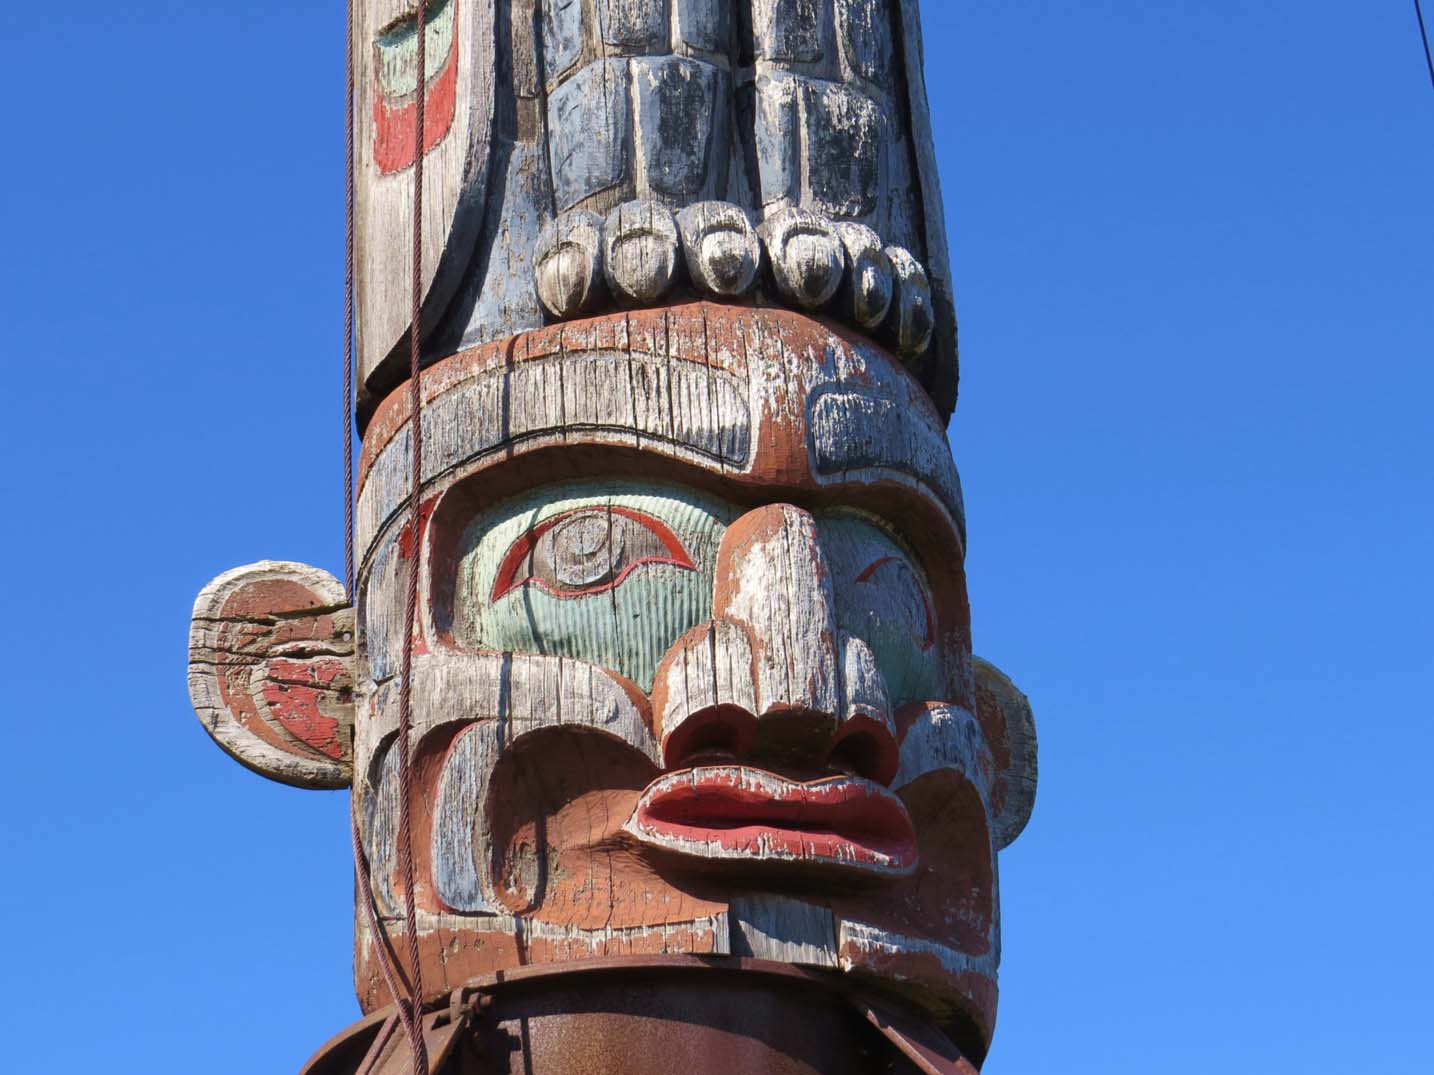 Carved wooden totem pole with face and eagle claws